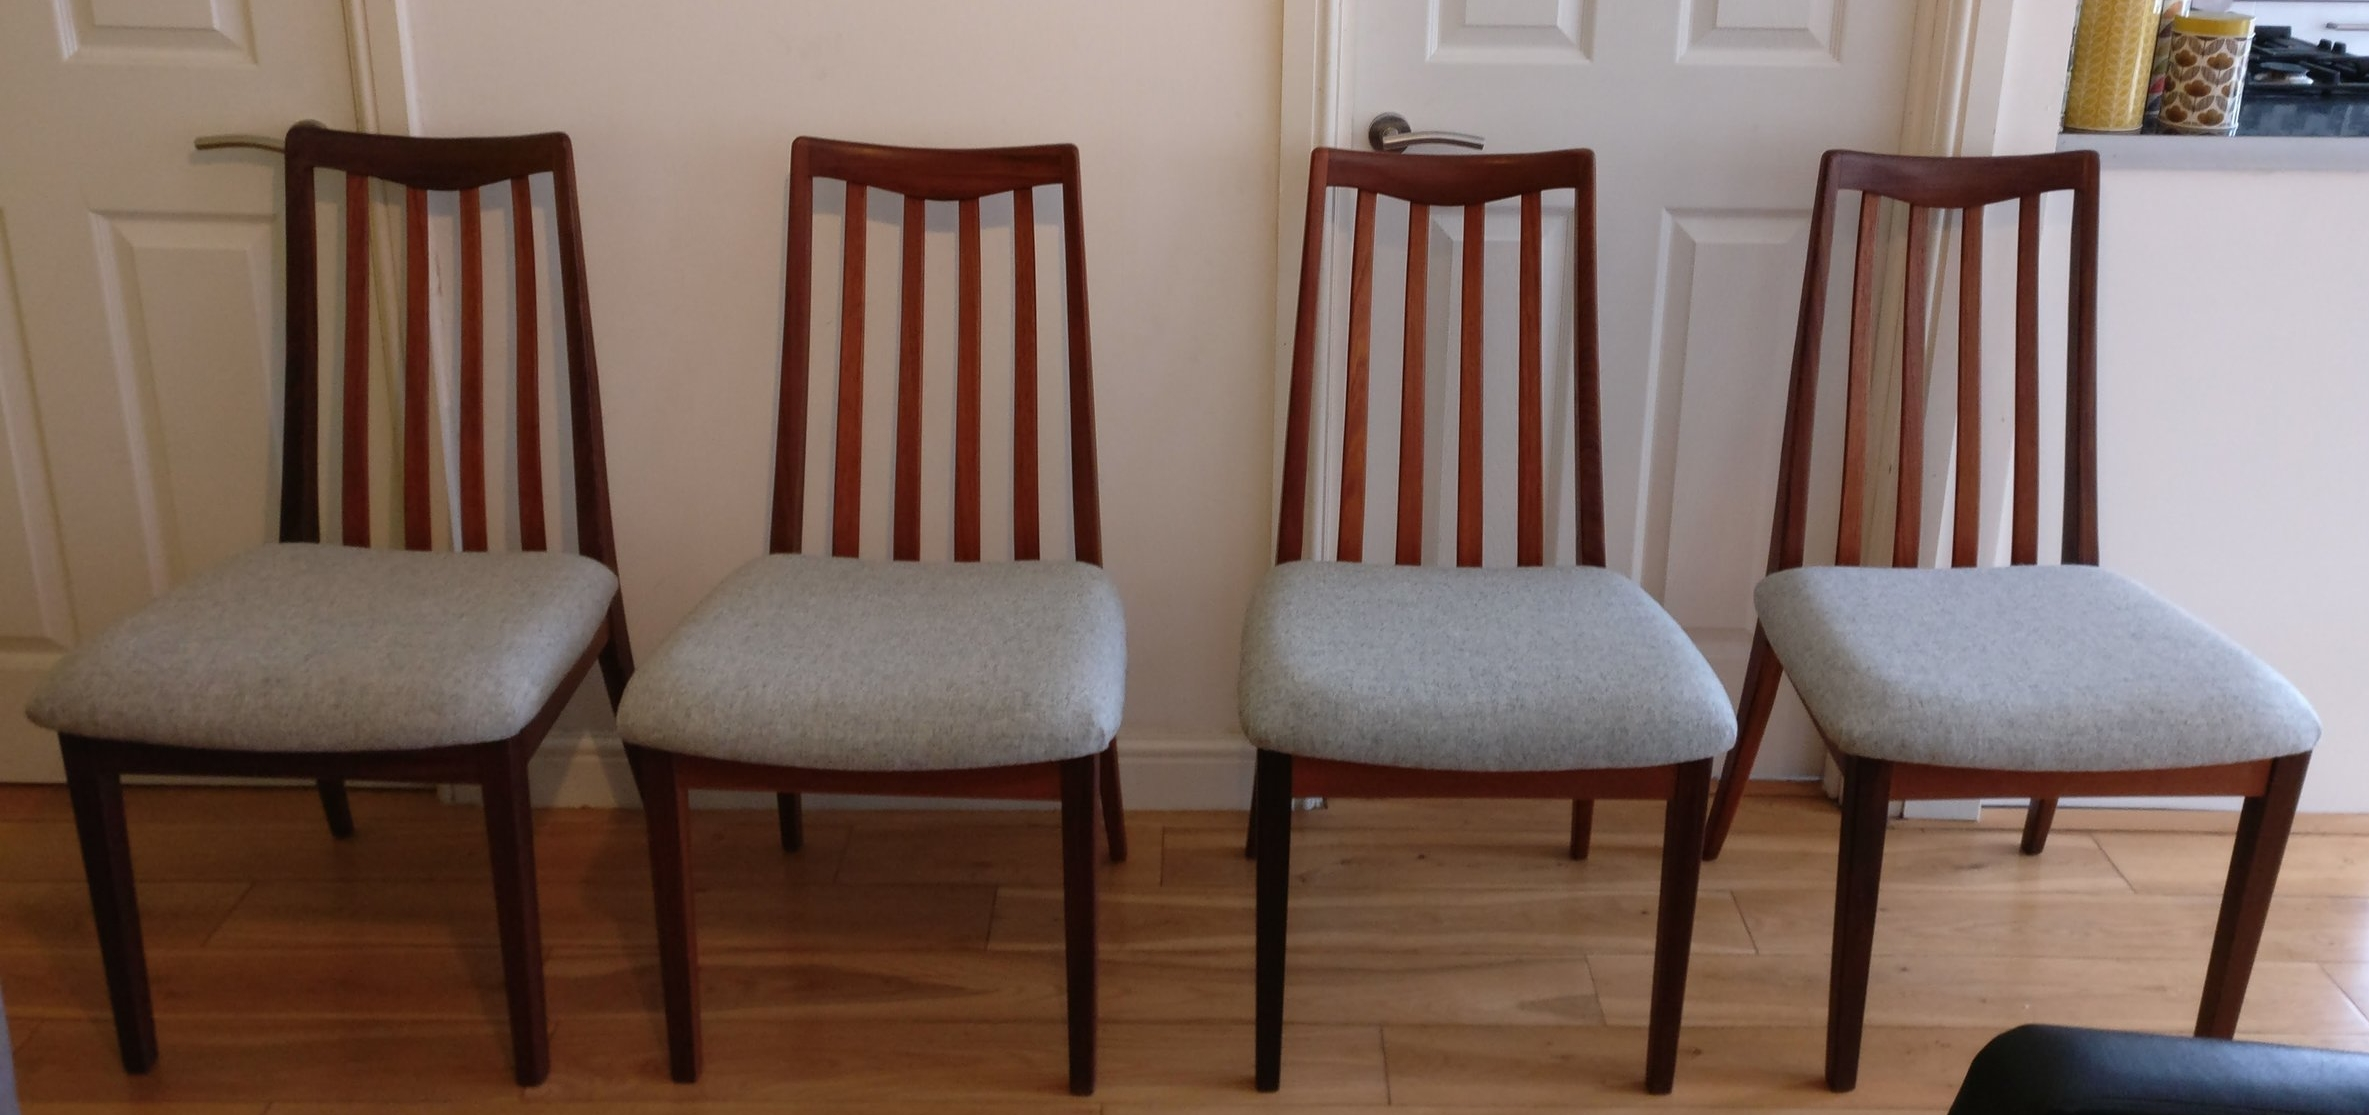 Reupholstered G Plan dining chairs